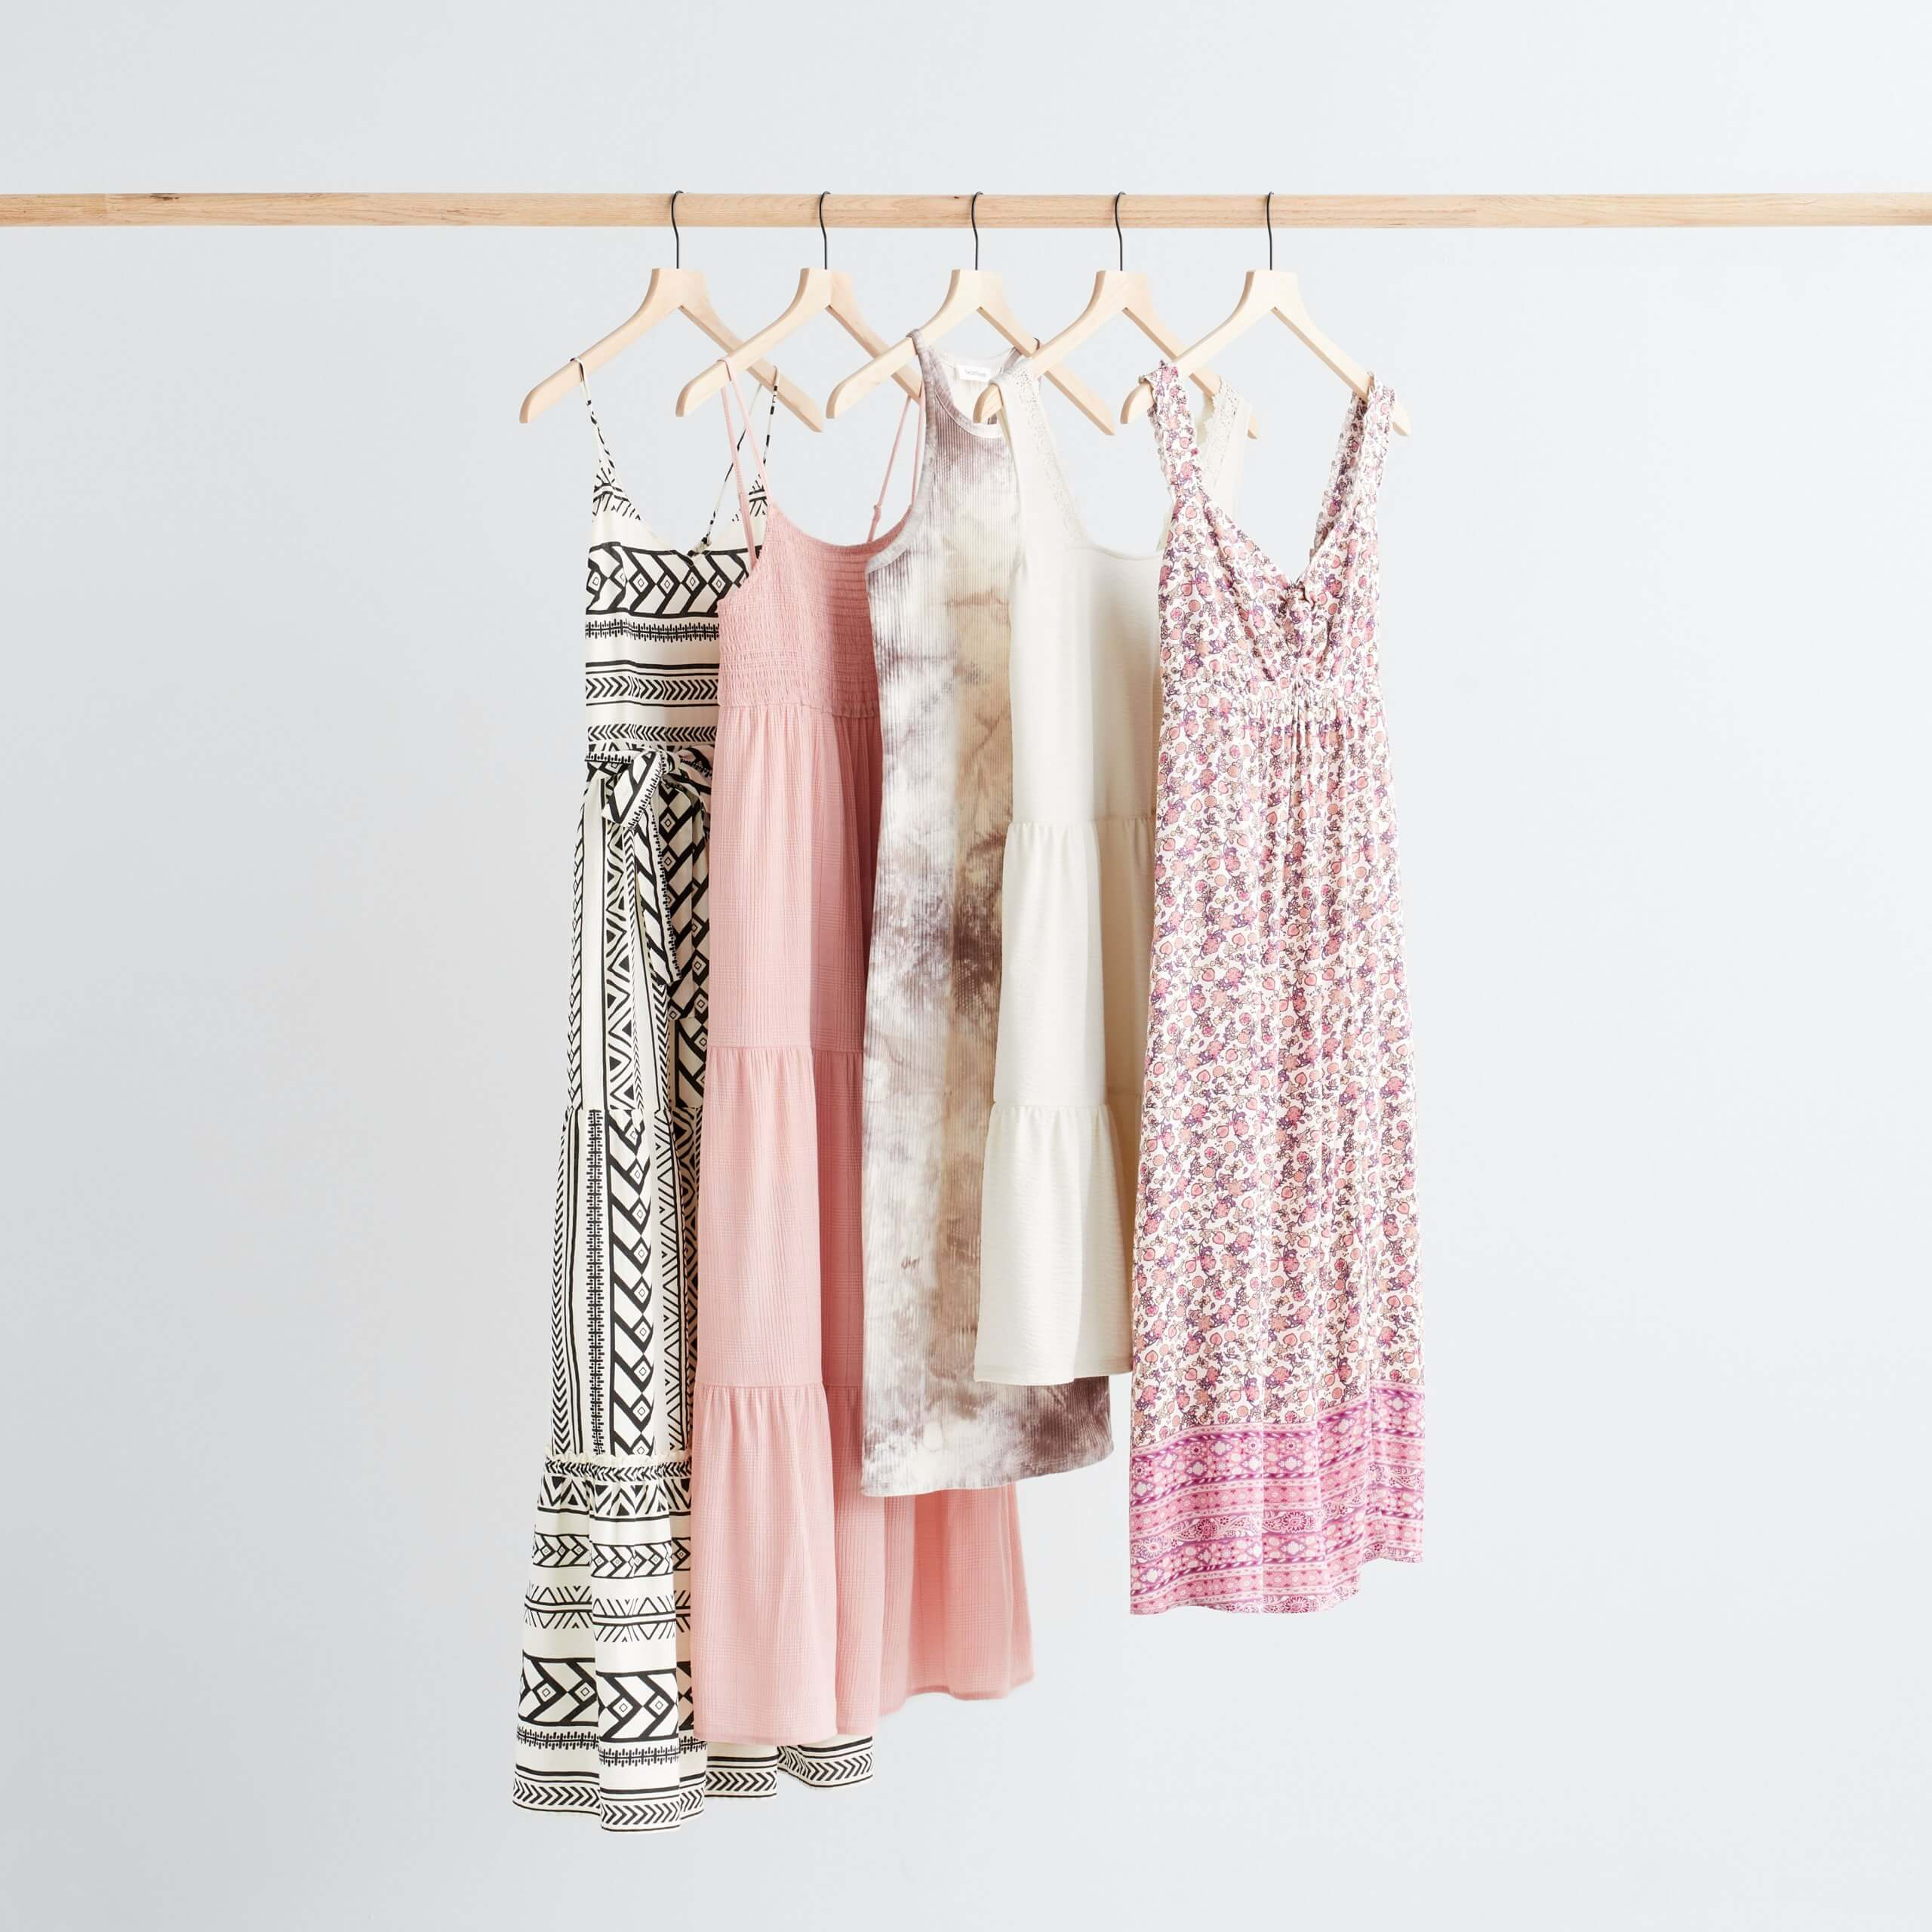 Stitch Fix Women's boho style dresses hanging in a variety of colors, prints and lengths.